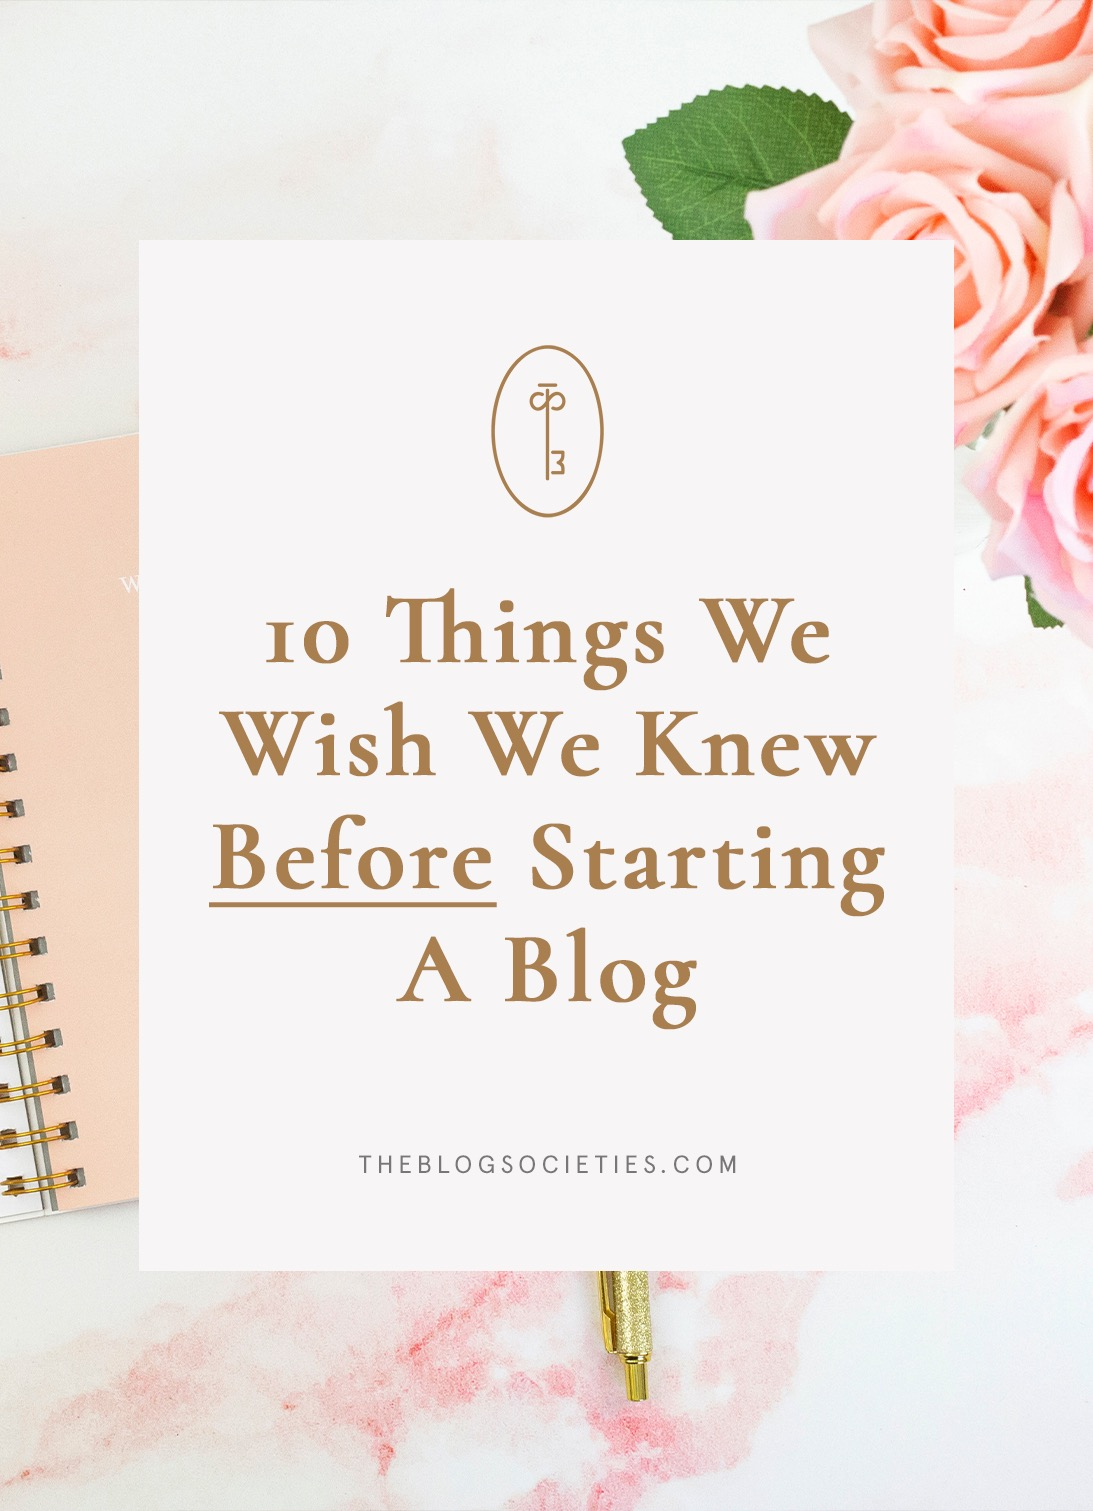 10 Things We Wish We Knew Before Starting A Blog